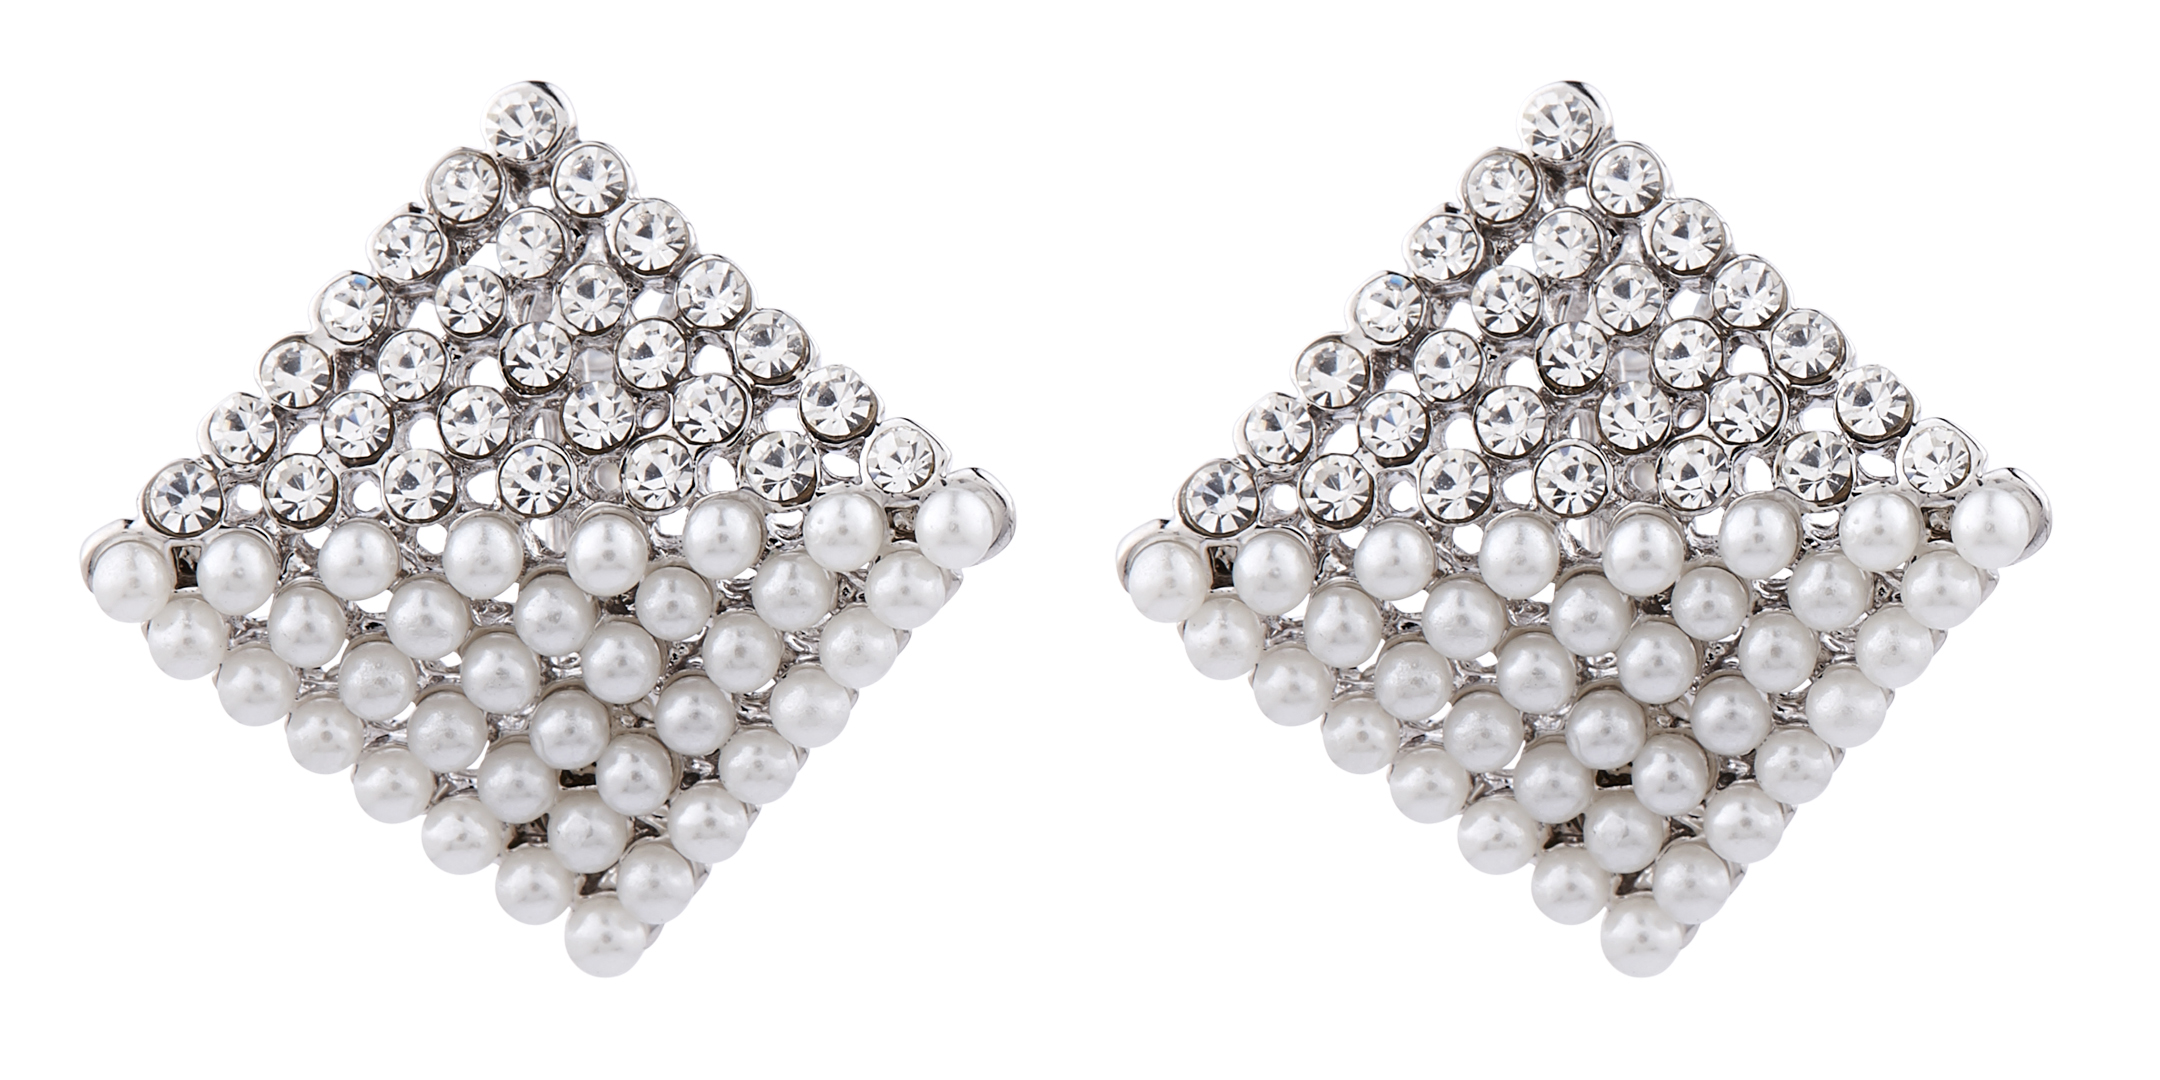 Clip On Earrings - Betsy S - silver stud earring with CZ crystals and pearls